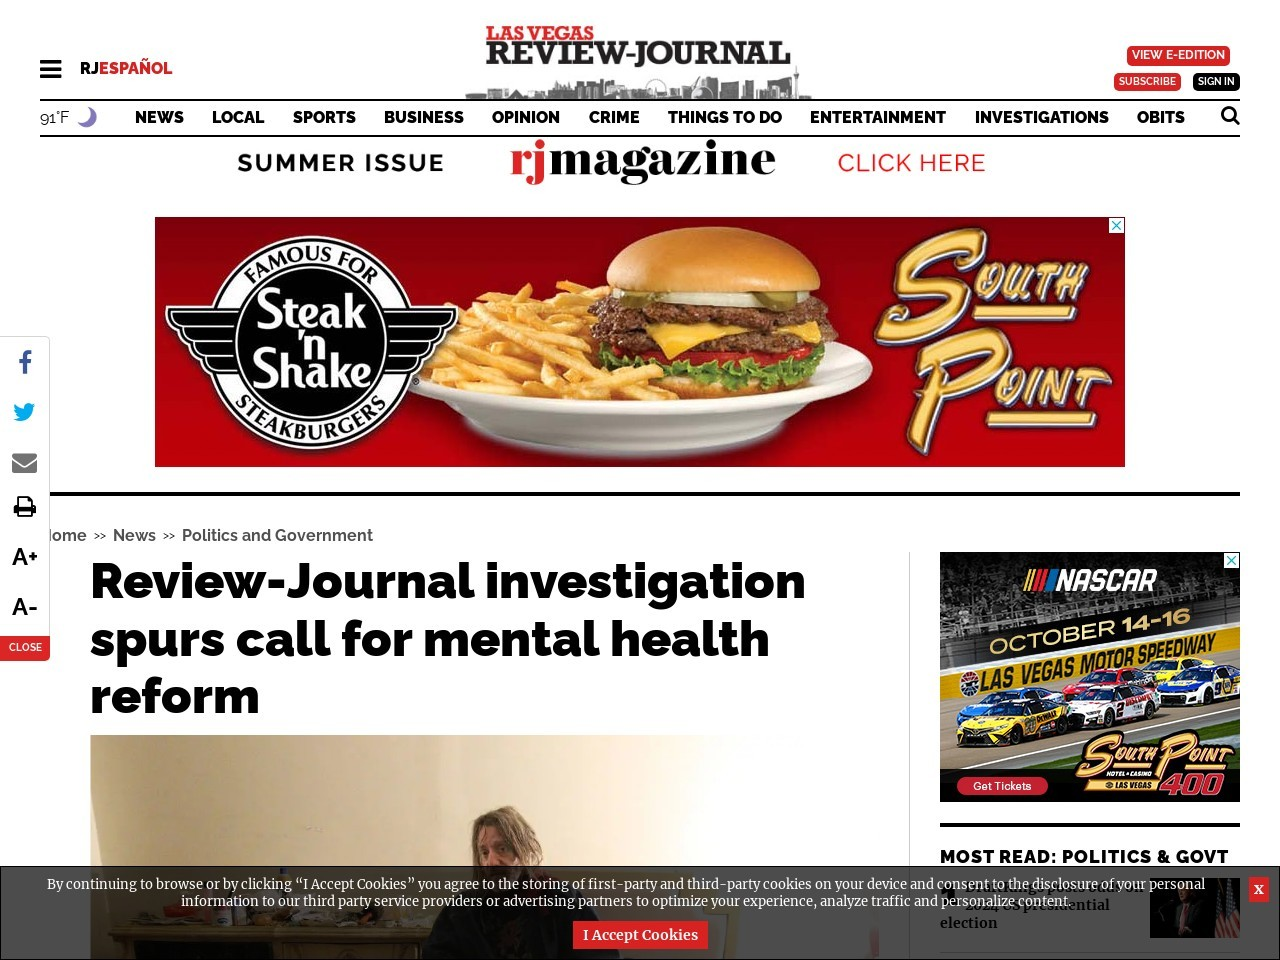 Review-Journal investigation spurs call for mental health reform